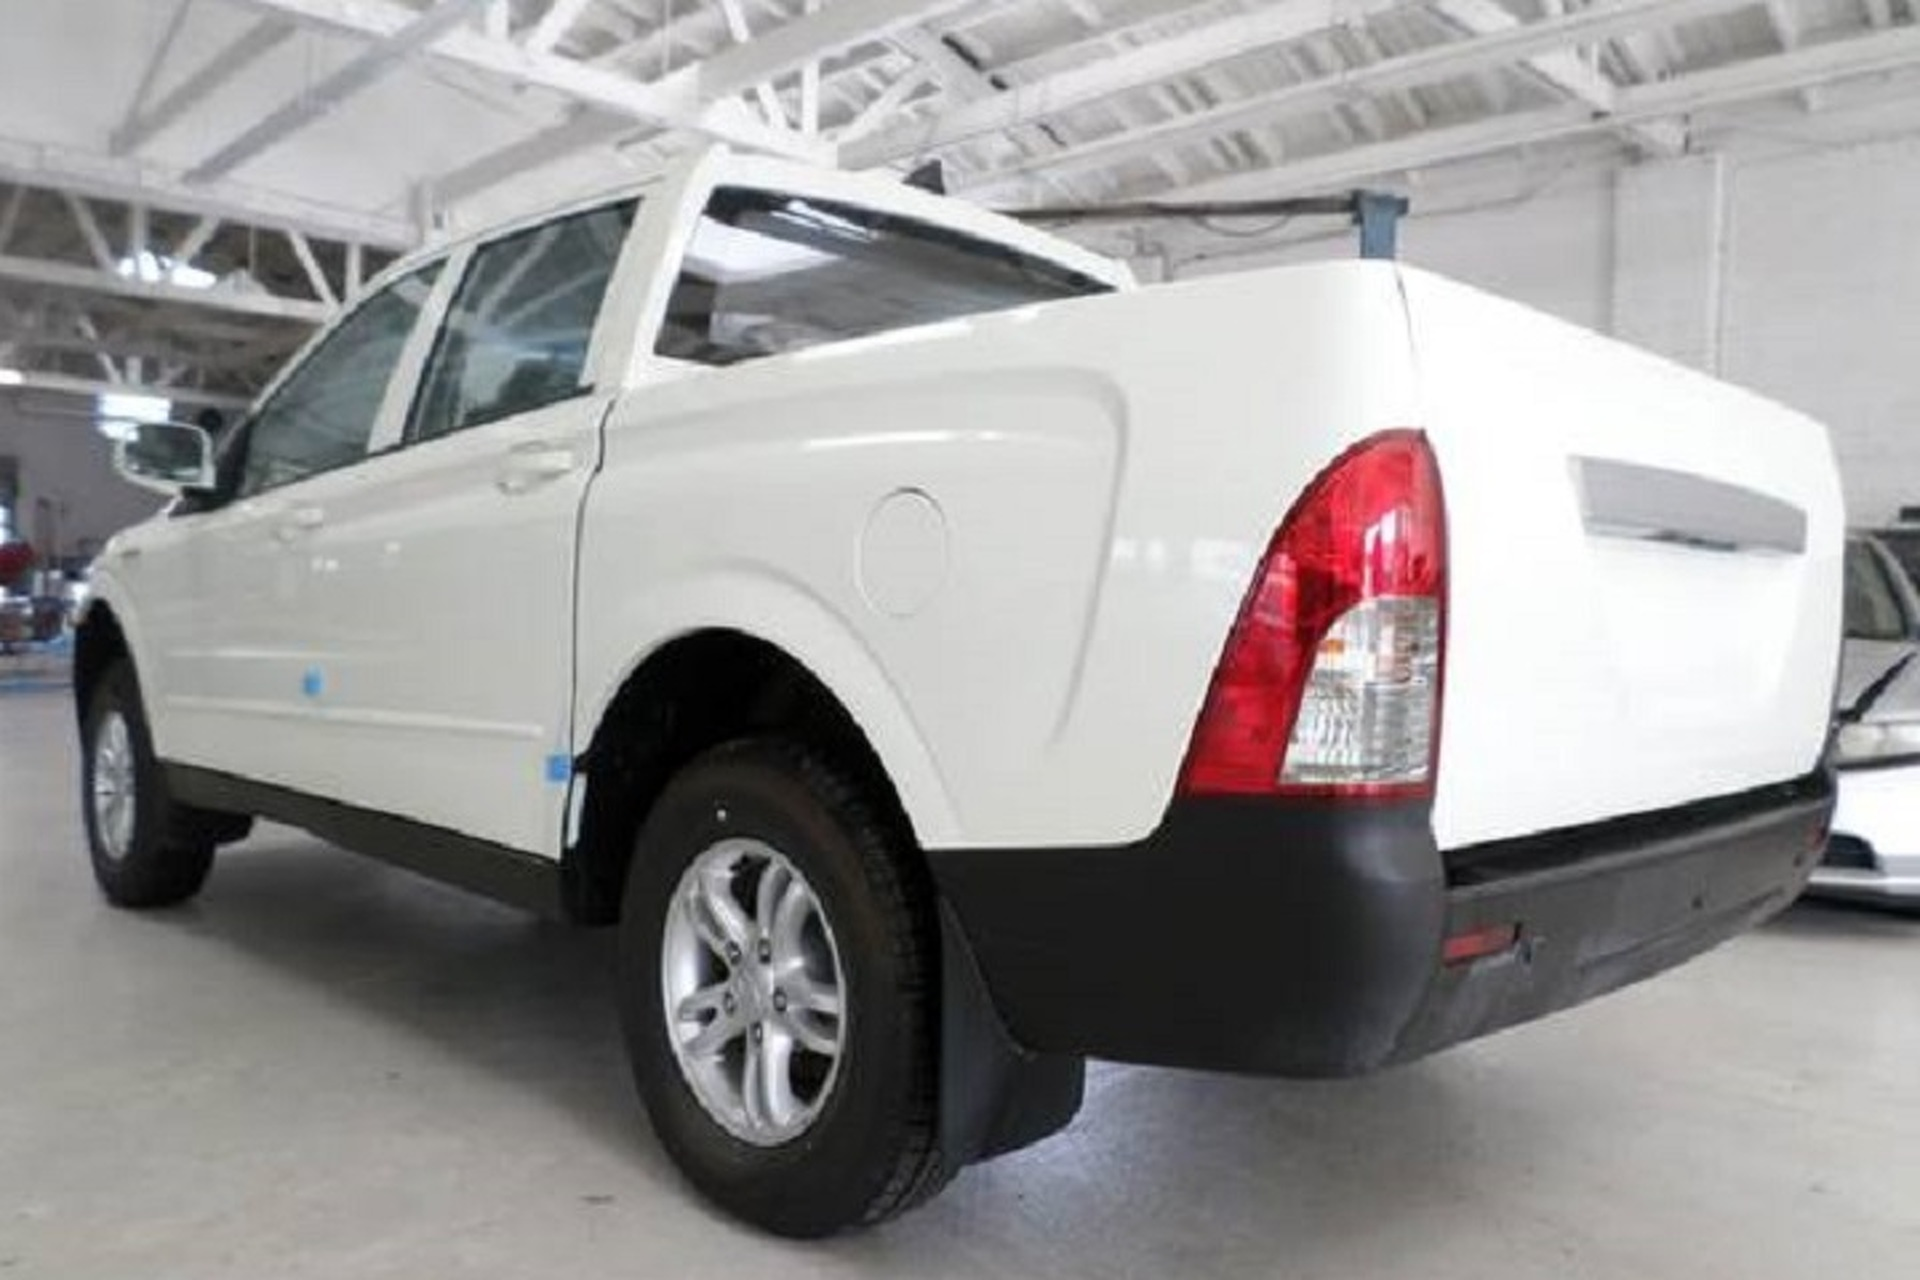 Korean SsangYong Actyon Sport Truck for Sale on Craigslist